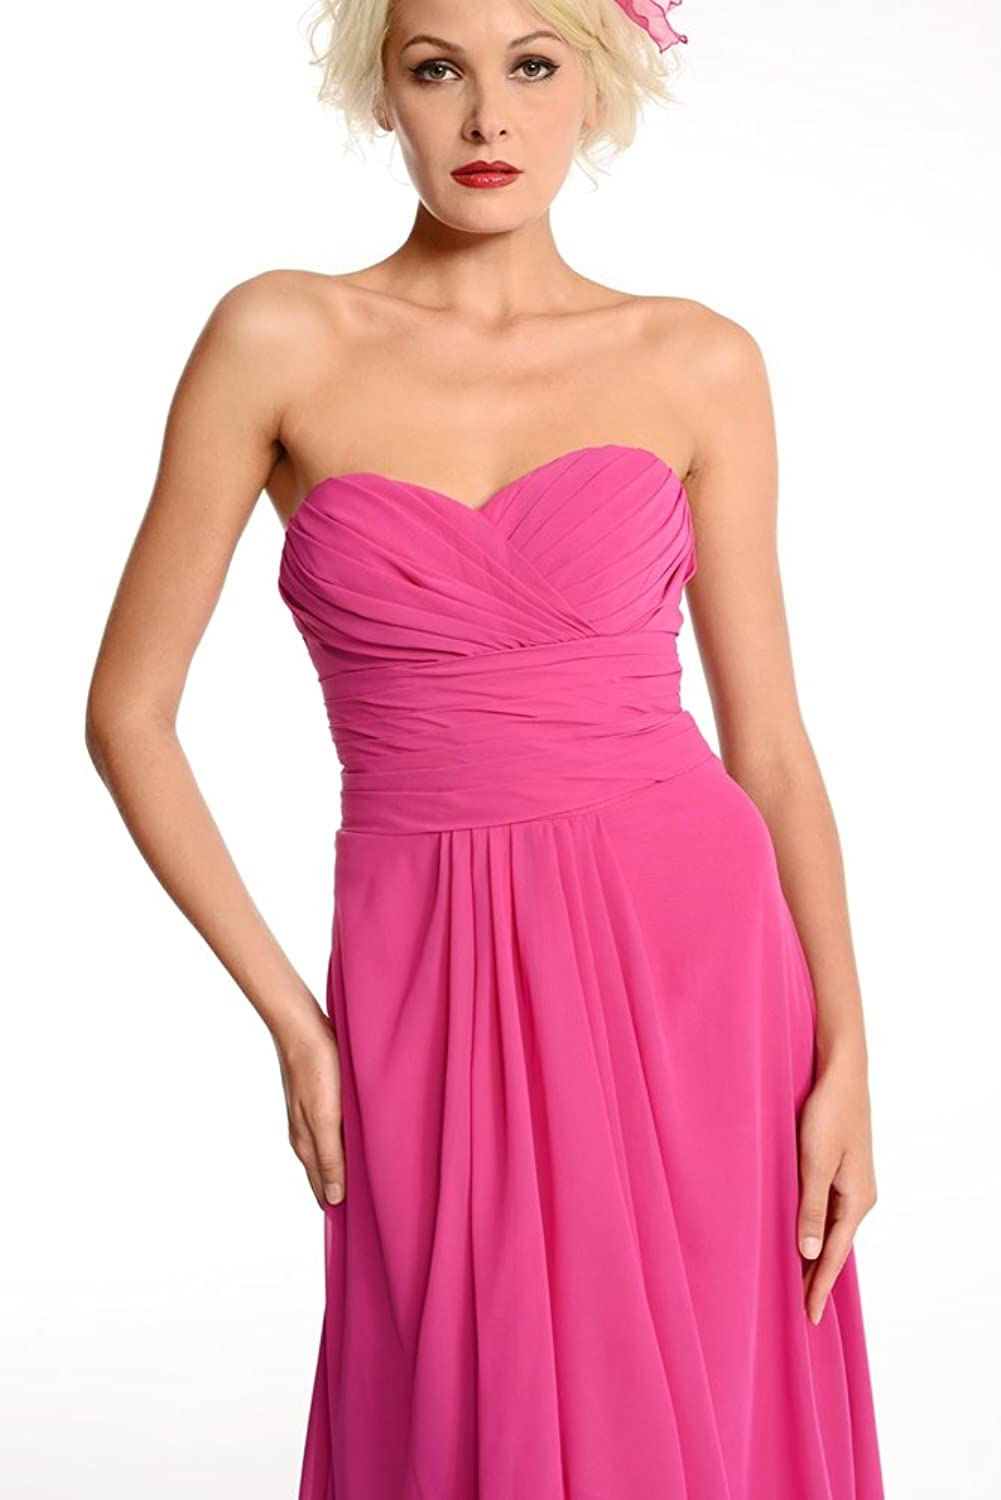 Amadeo Drapped Chiffon Floor Length Pink Bridesmaid Dress LF007